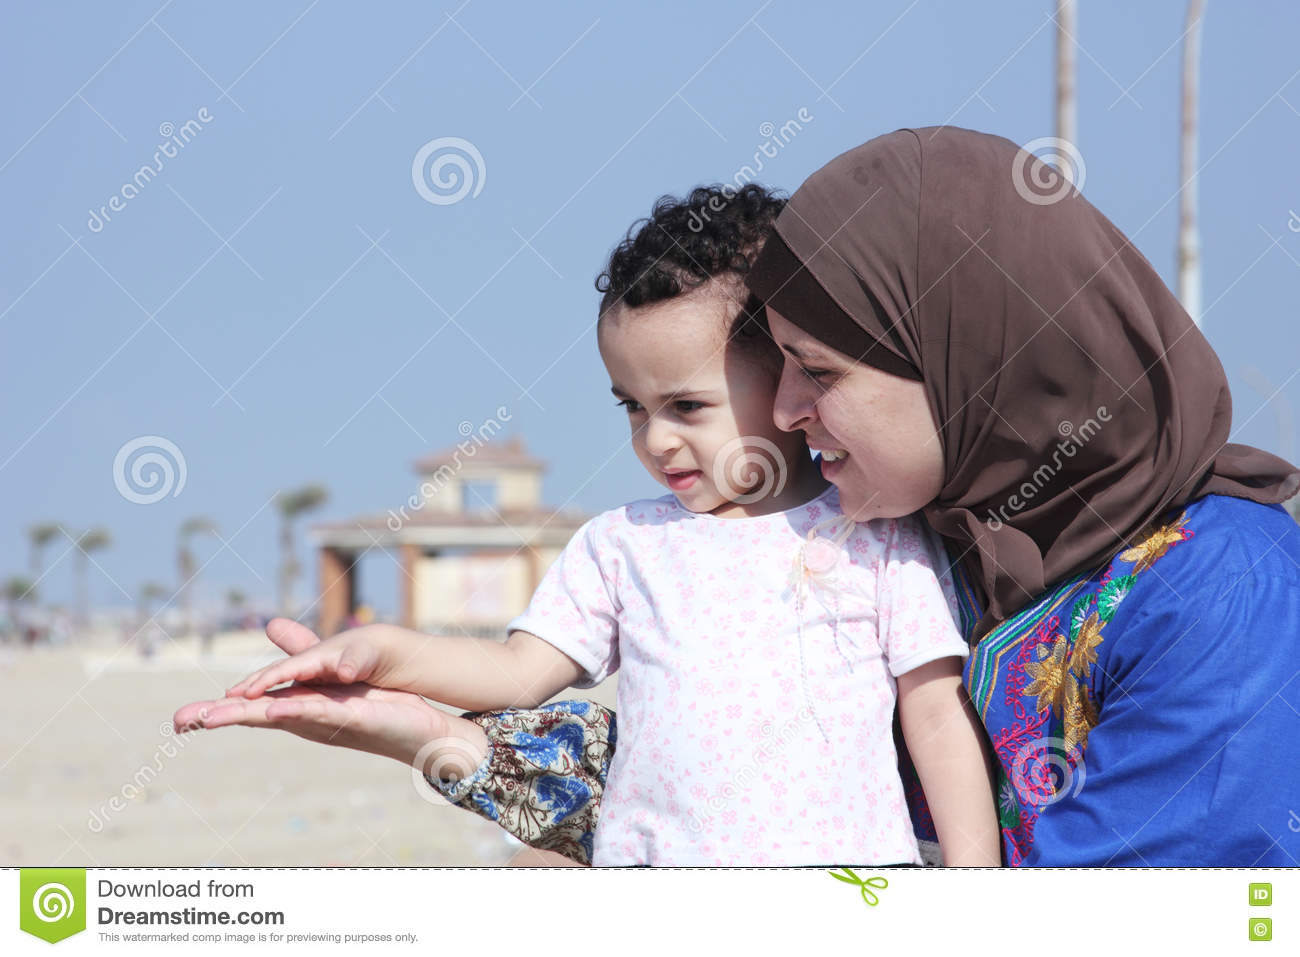 muslim stock images - download 187,220 photos